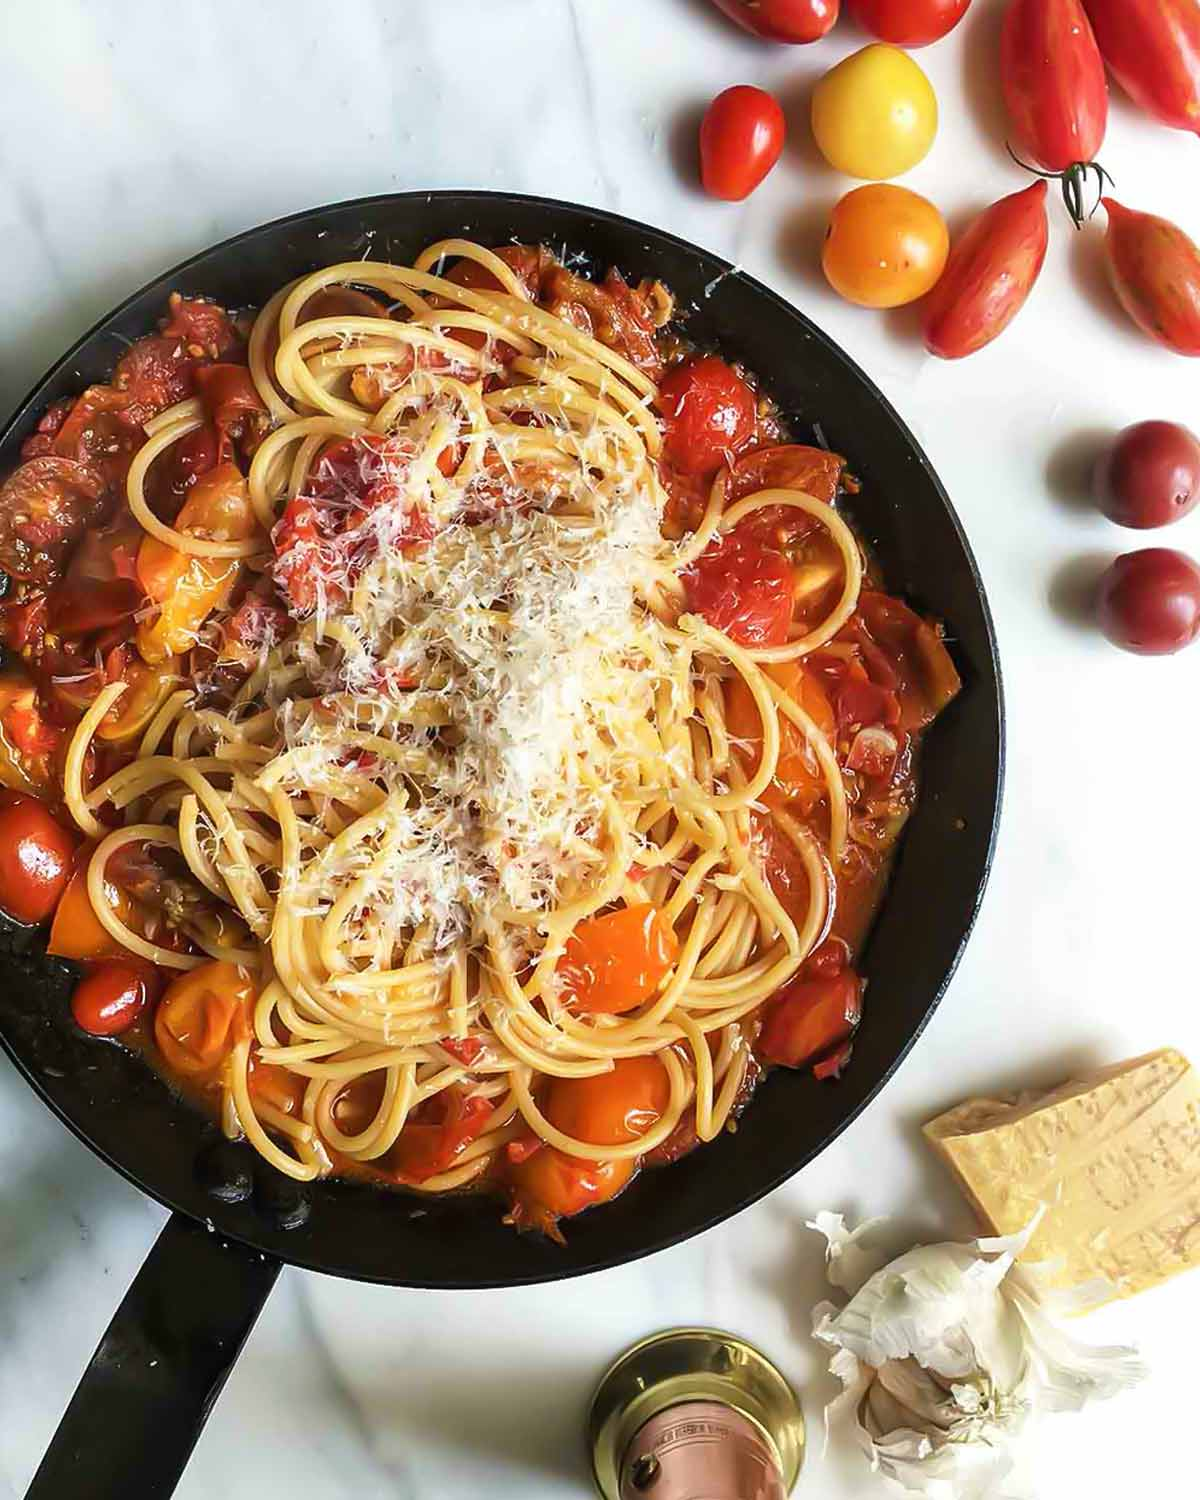 A black skillet filled with summer tomato pasta, sprinkled with fresh Parmesan cheese.